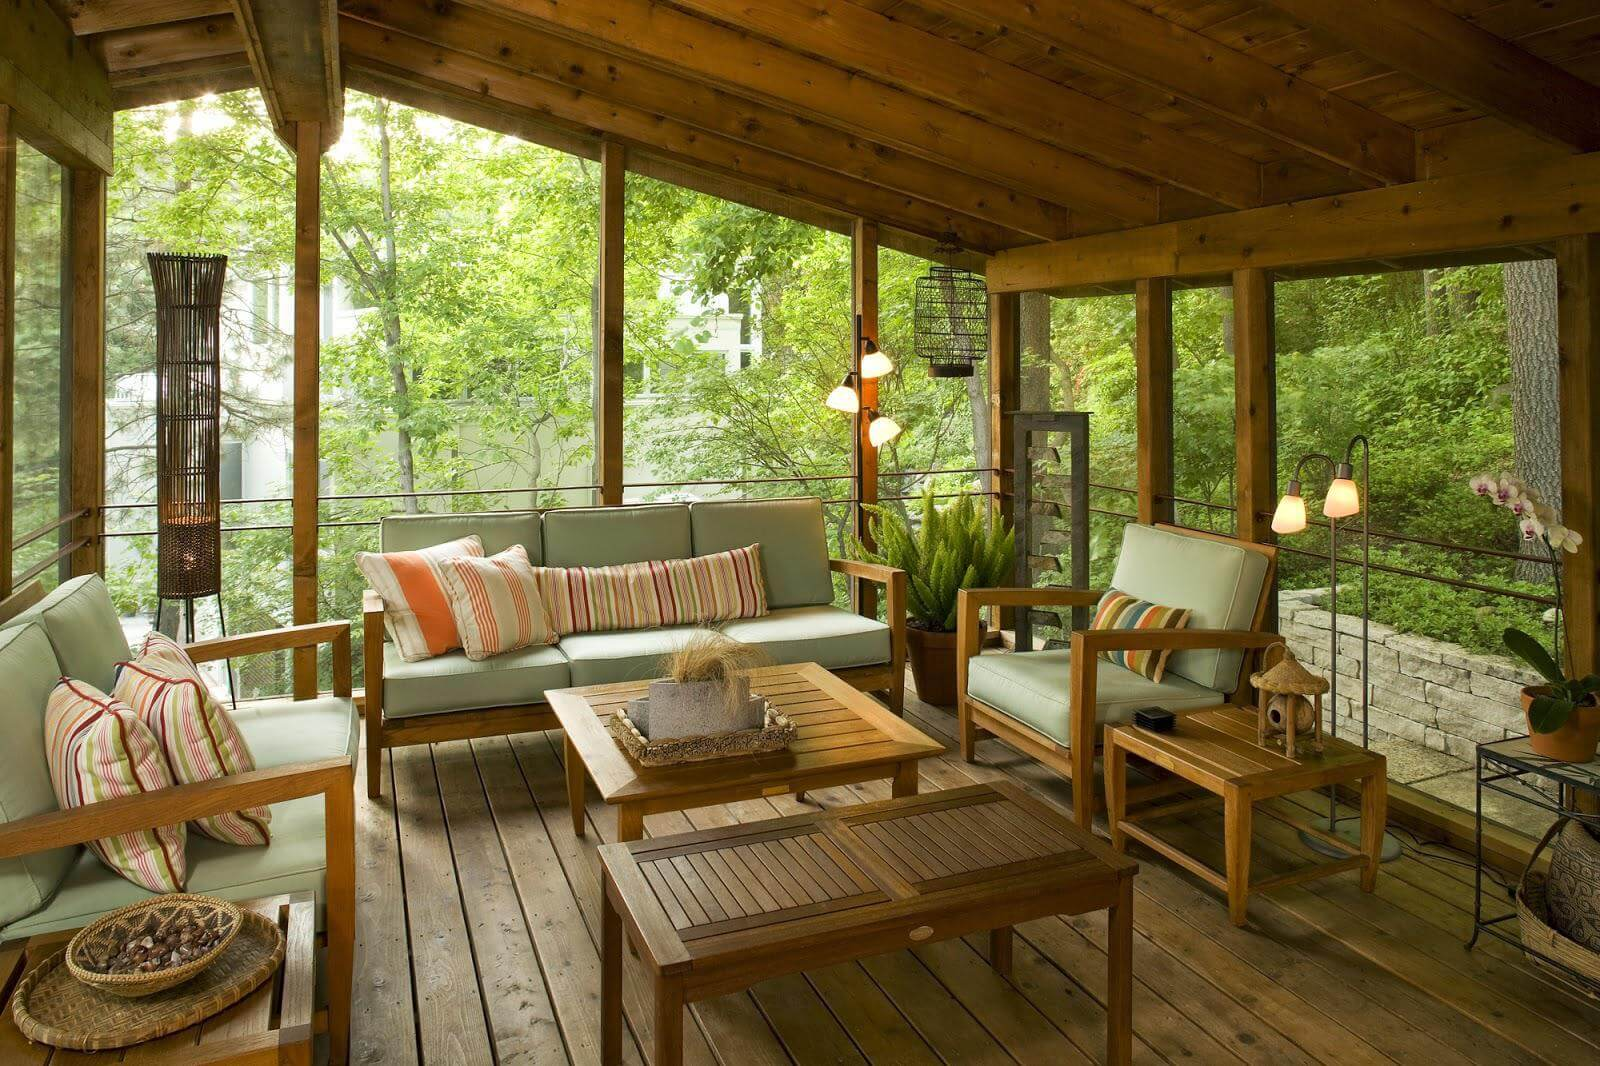 RUSTIC MODERN SCREENED IN PORCH DESIGN IDEAS